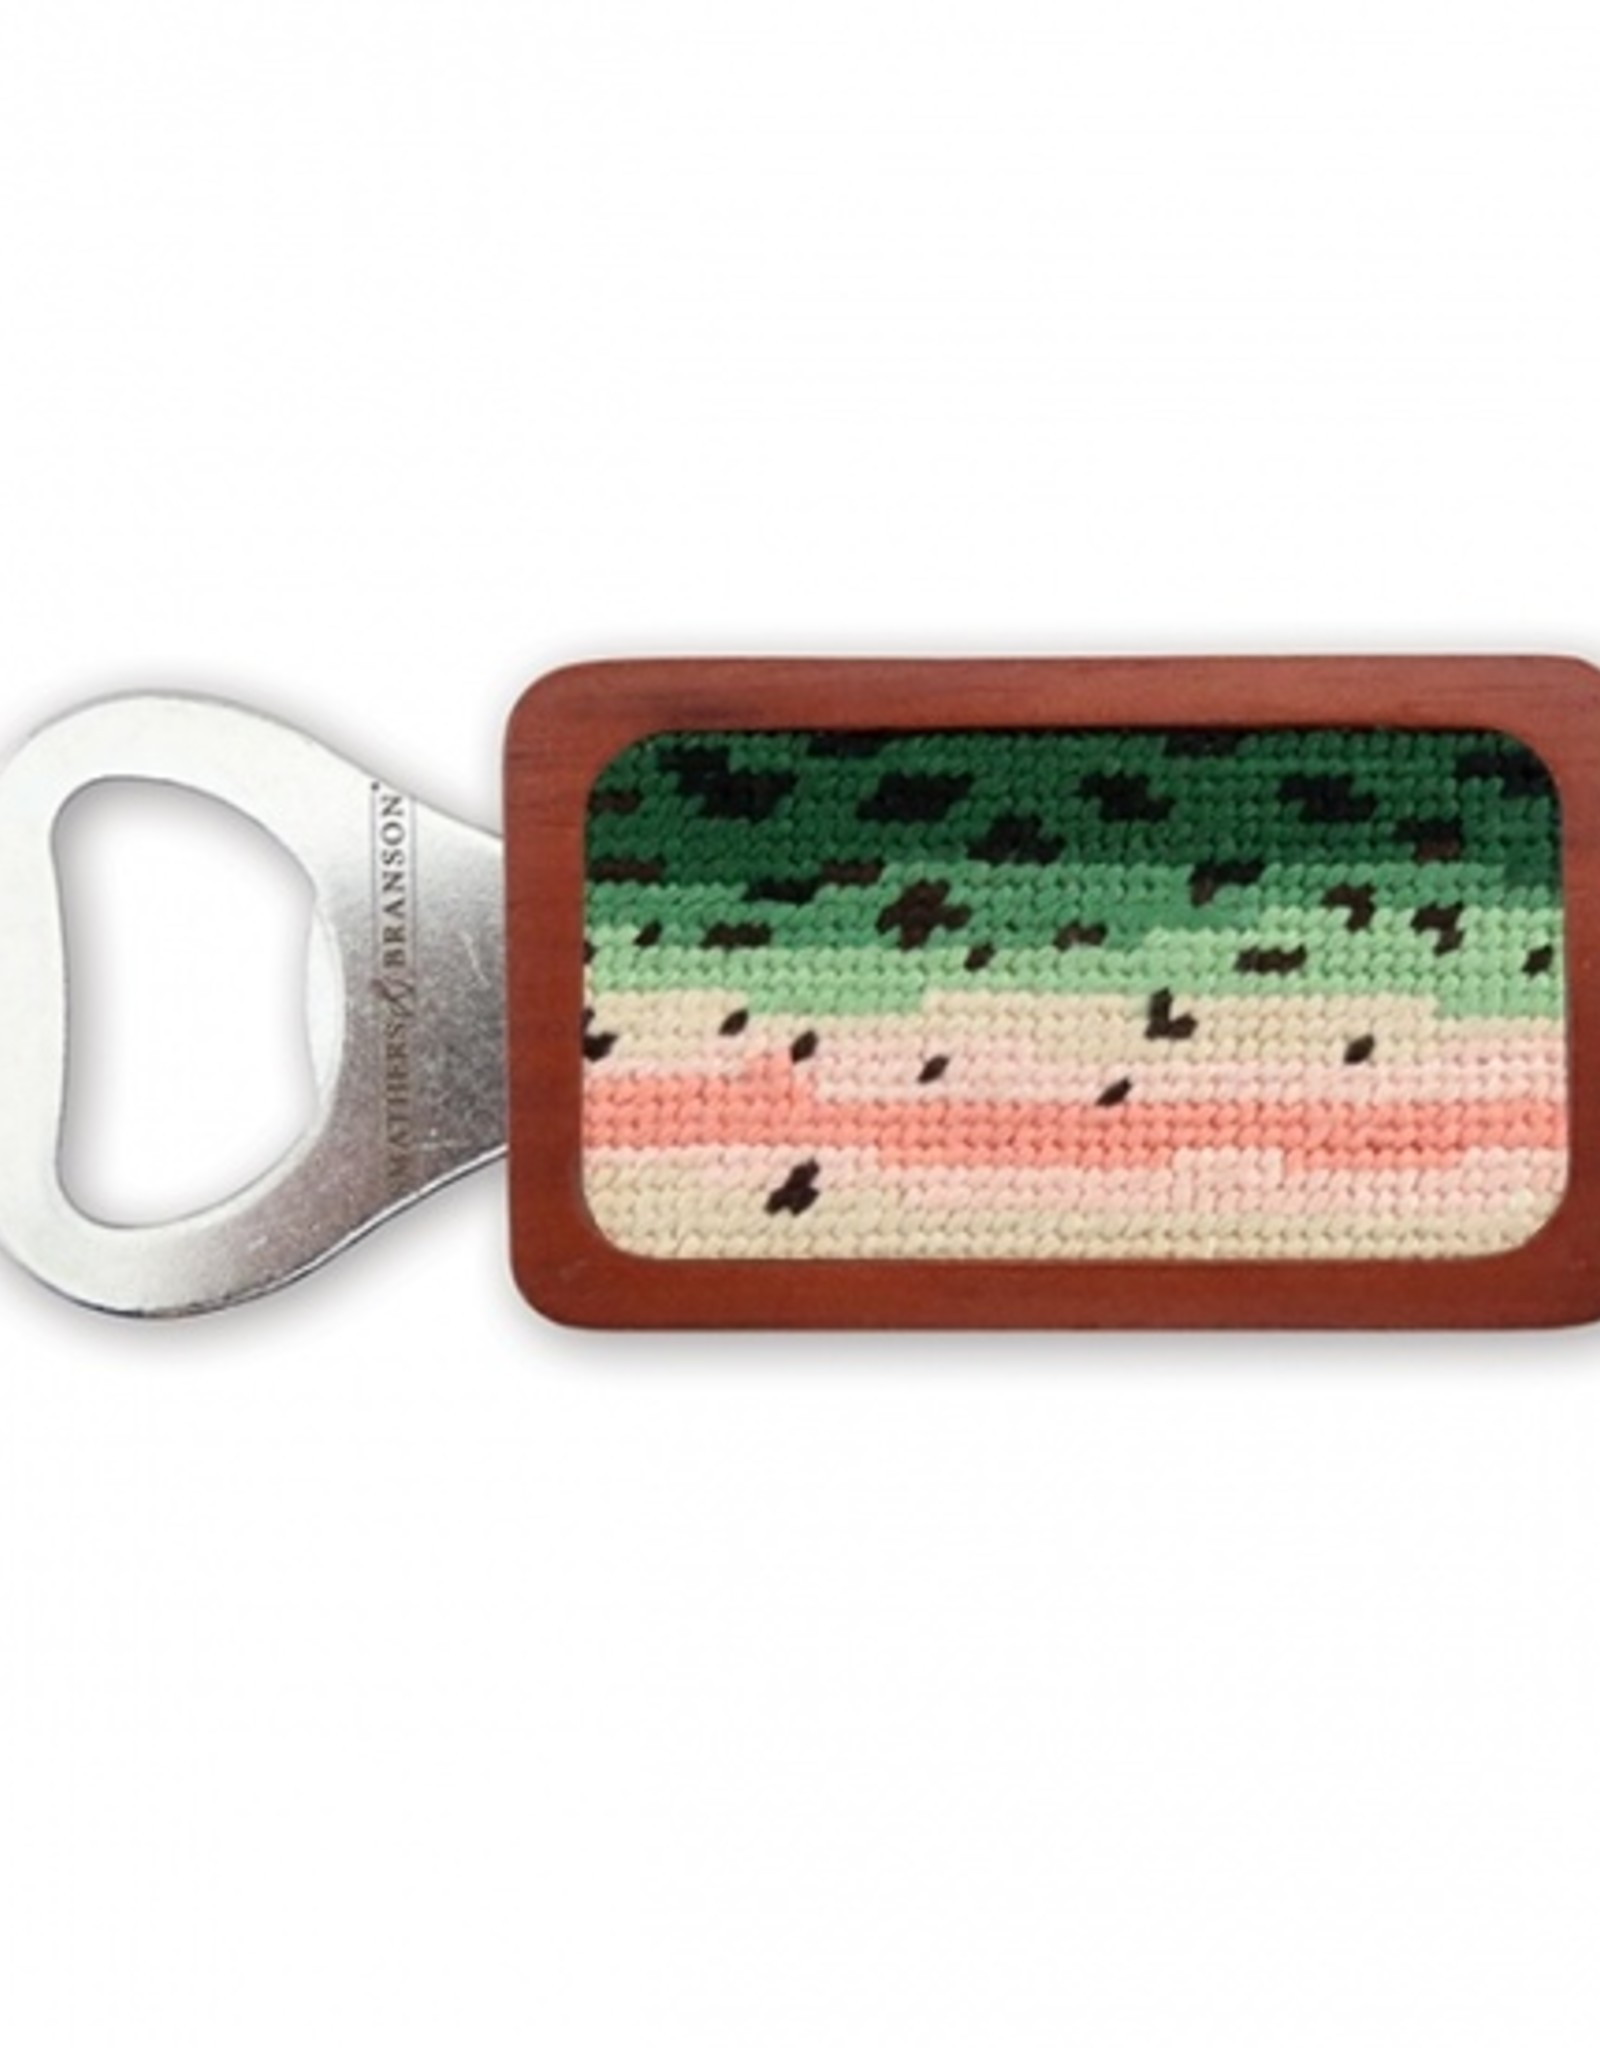 Smathers and Branson  Rainbow Trout Skin Bottle Opener